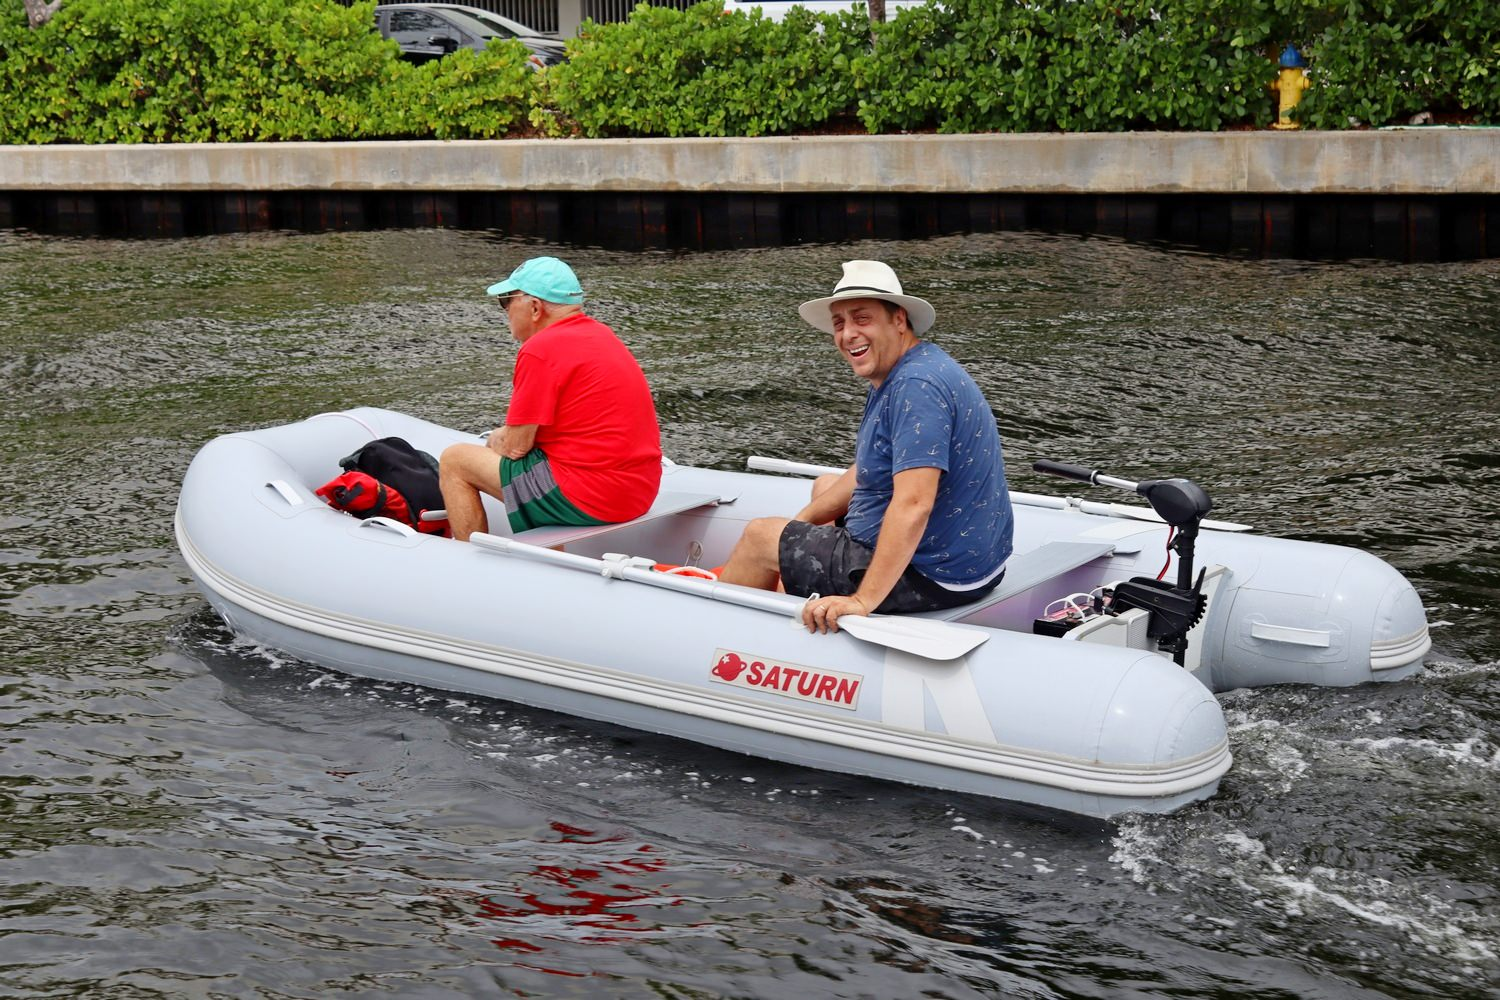 Saturn Hypalon Inflatable Boat HP360